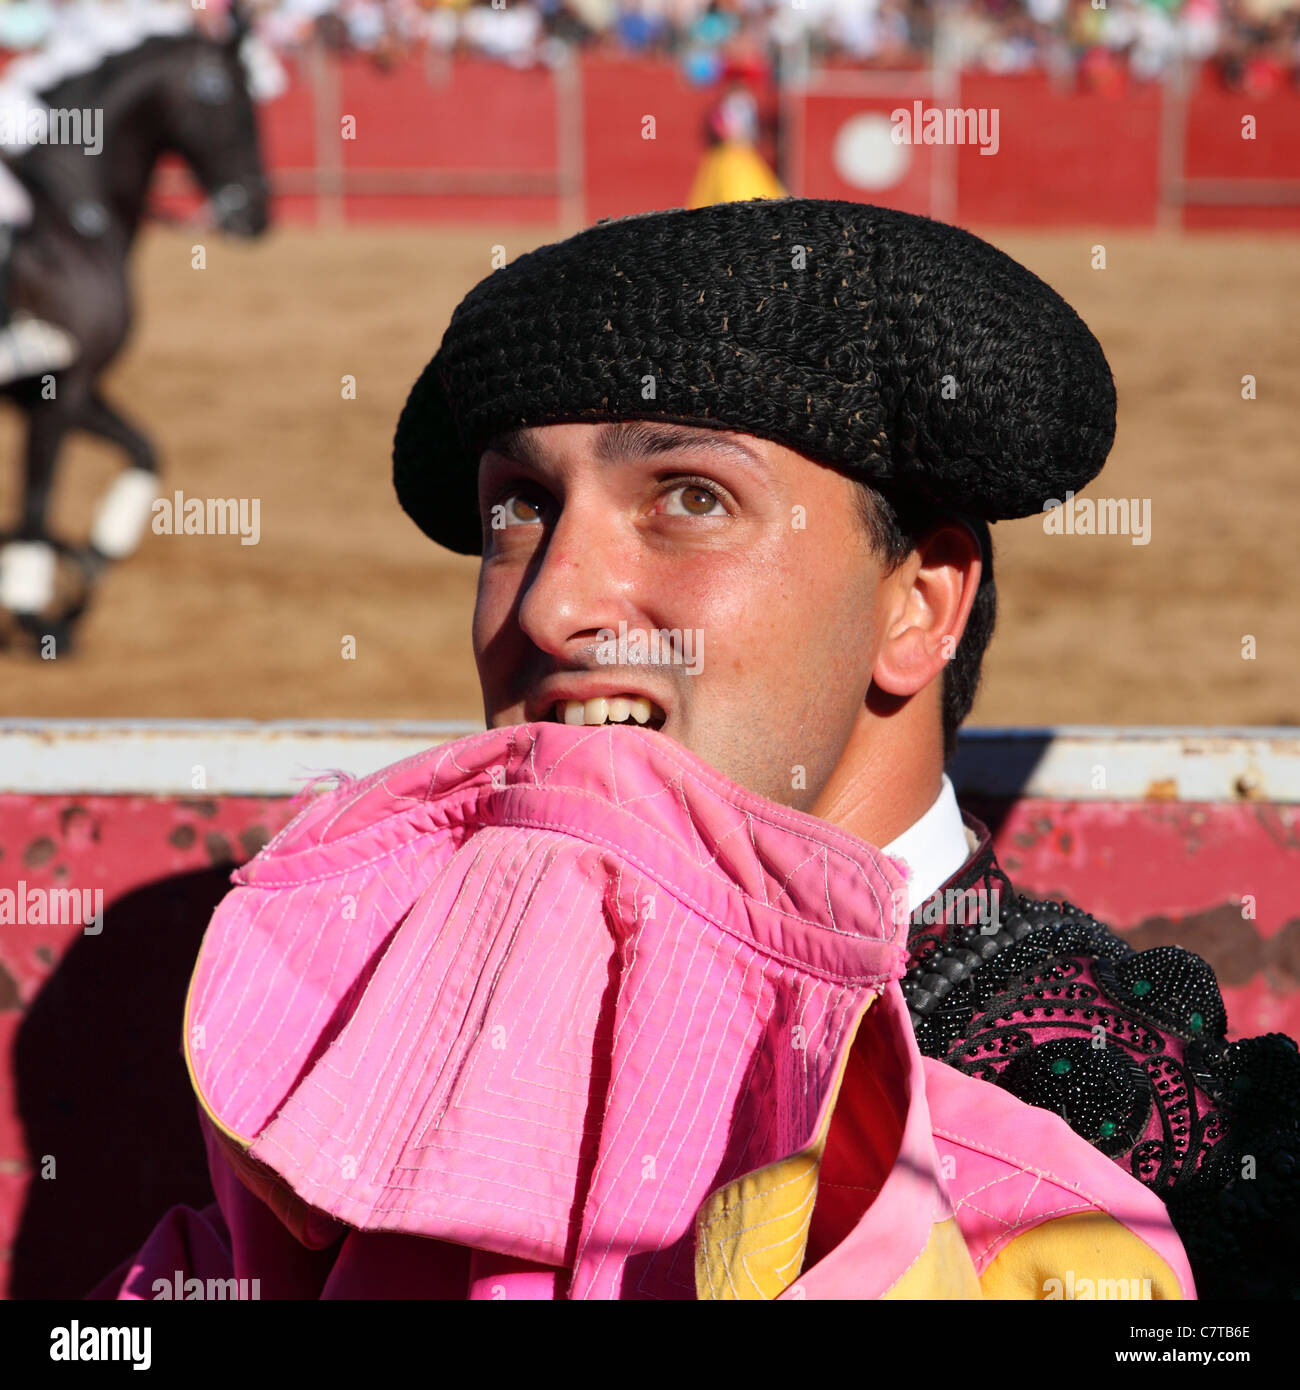 The bullfighter (Bandarilheiro) Jose Russiano prepares for action at a  bullfight. - Stock af4b201e6ce